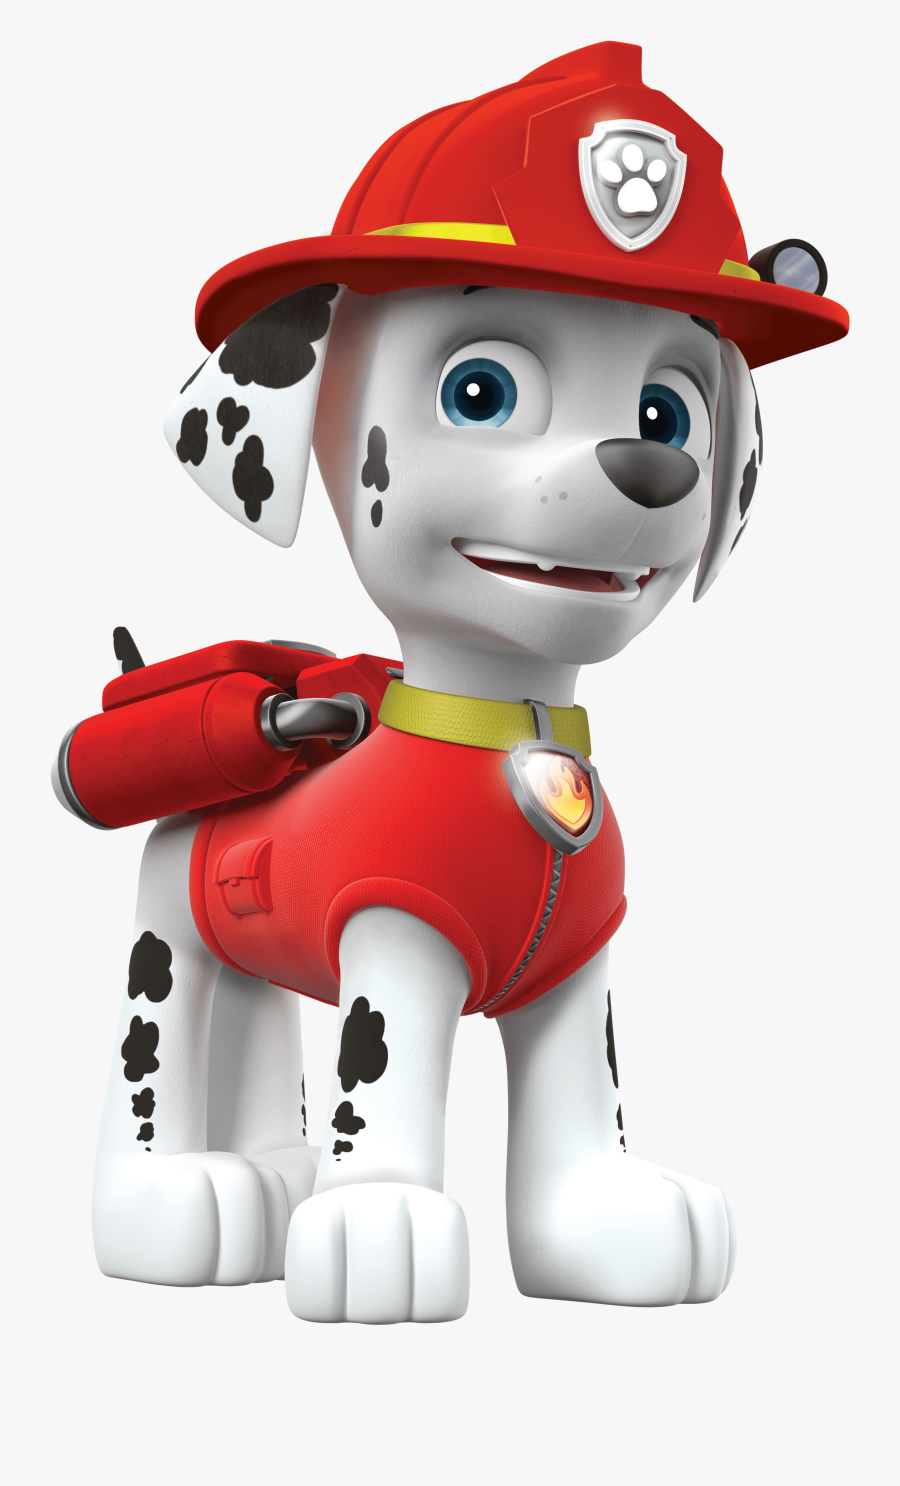 Paw Patrol Marshall Png Clipart Image - Marshall Paw Patrol Characters, Transparent Clipart